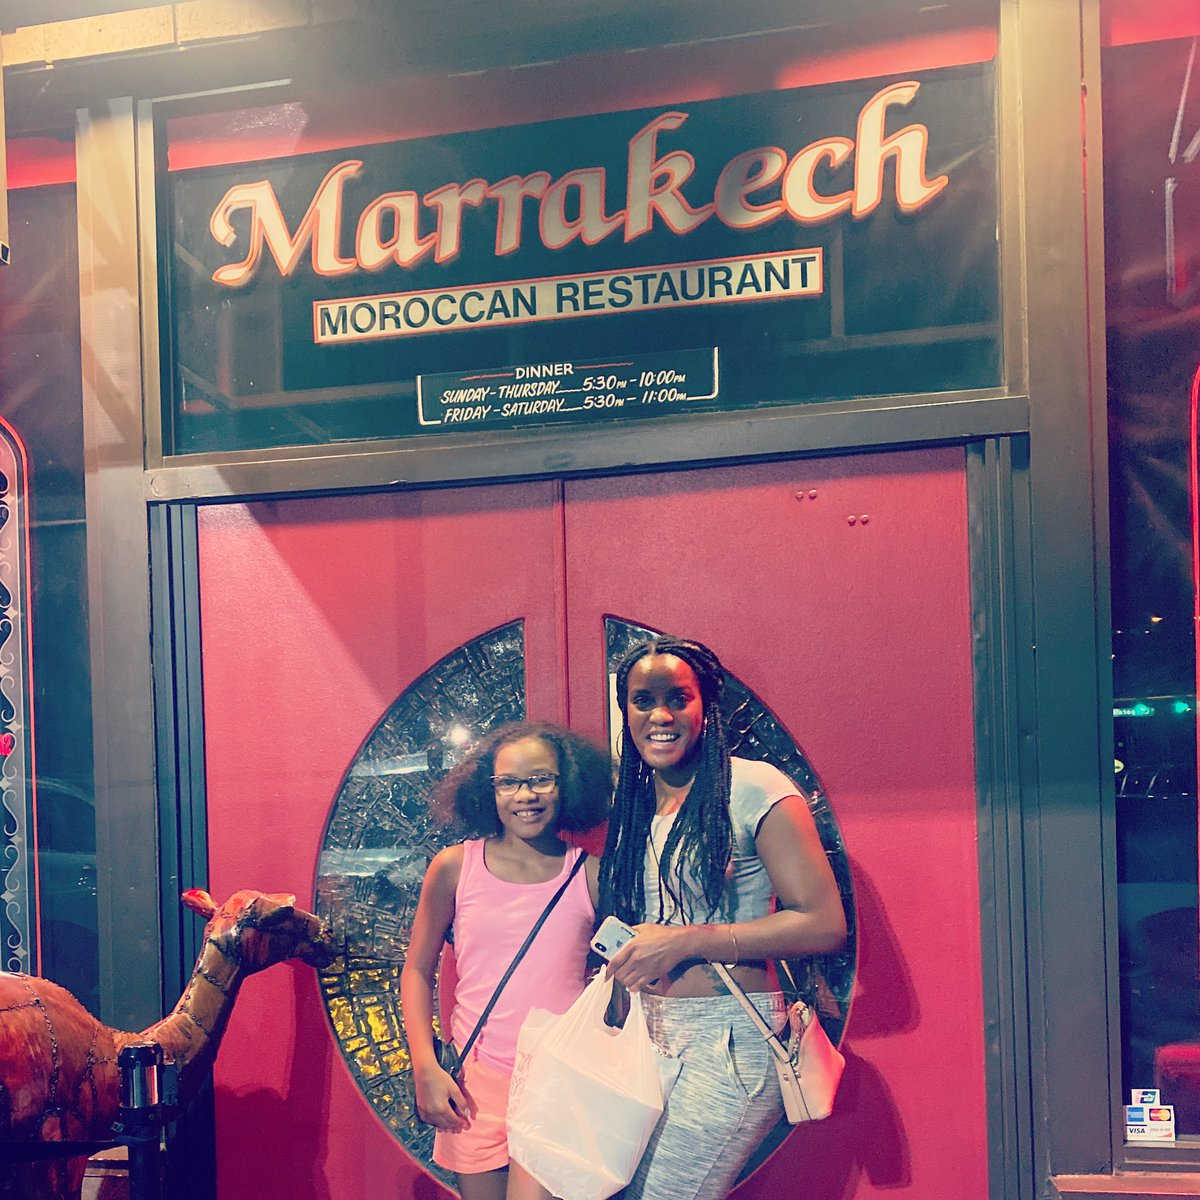 Mackenzie and Shawn enjoying a girls night out together!  #GirlsNightOut #fun #marrakechpic.twitter.com/6LhKR14Wkn